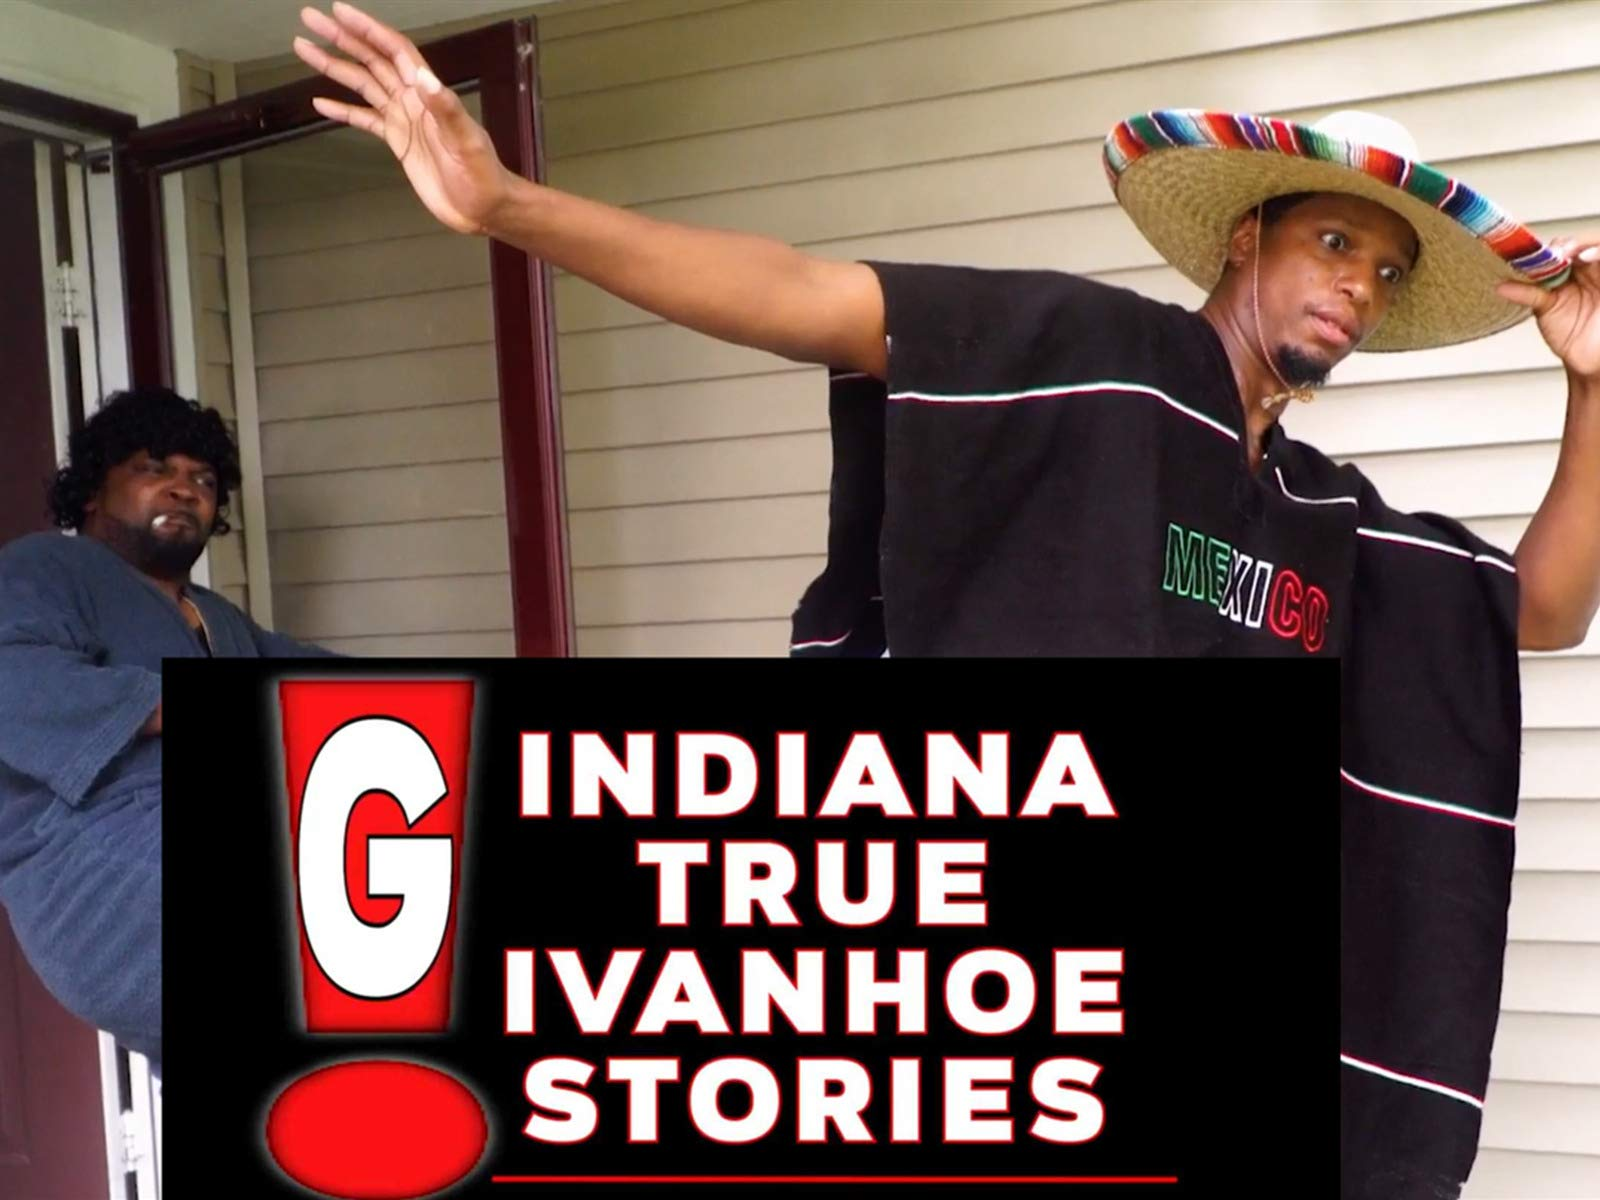 G! Indiana True Ivanhoe Stories